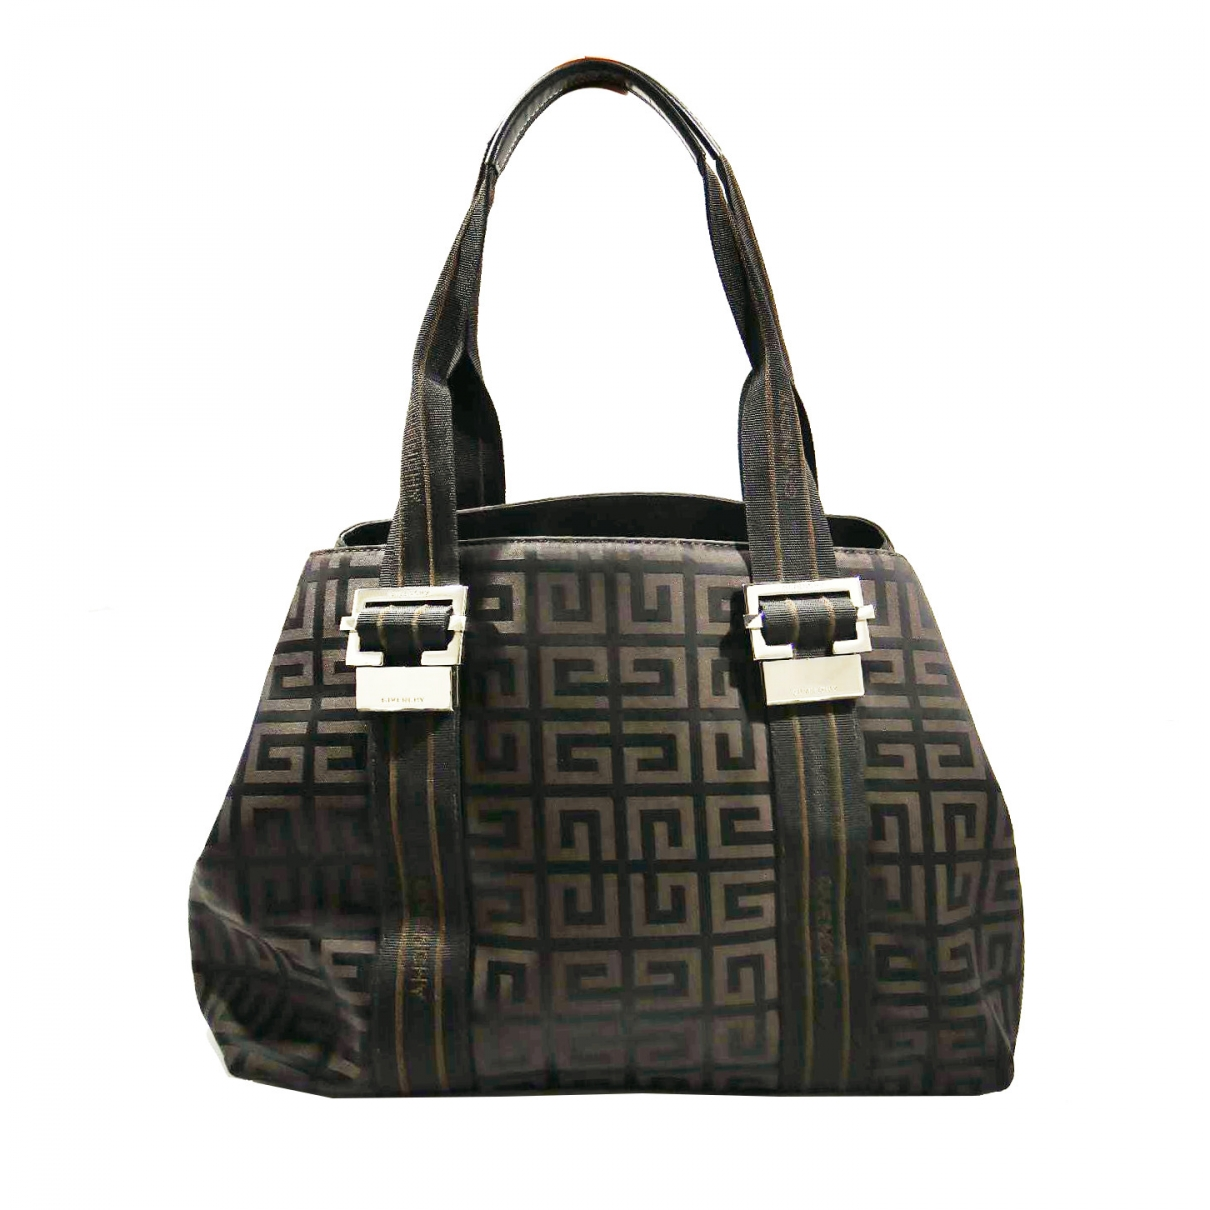 Givenchy \N Black Cloth handbag for Women \N